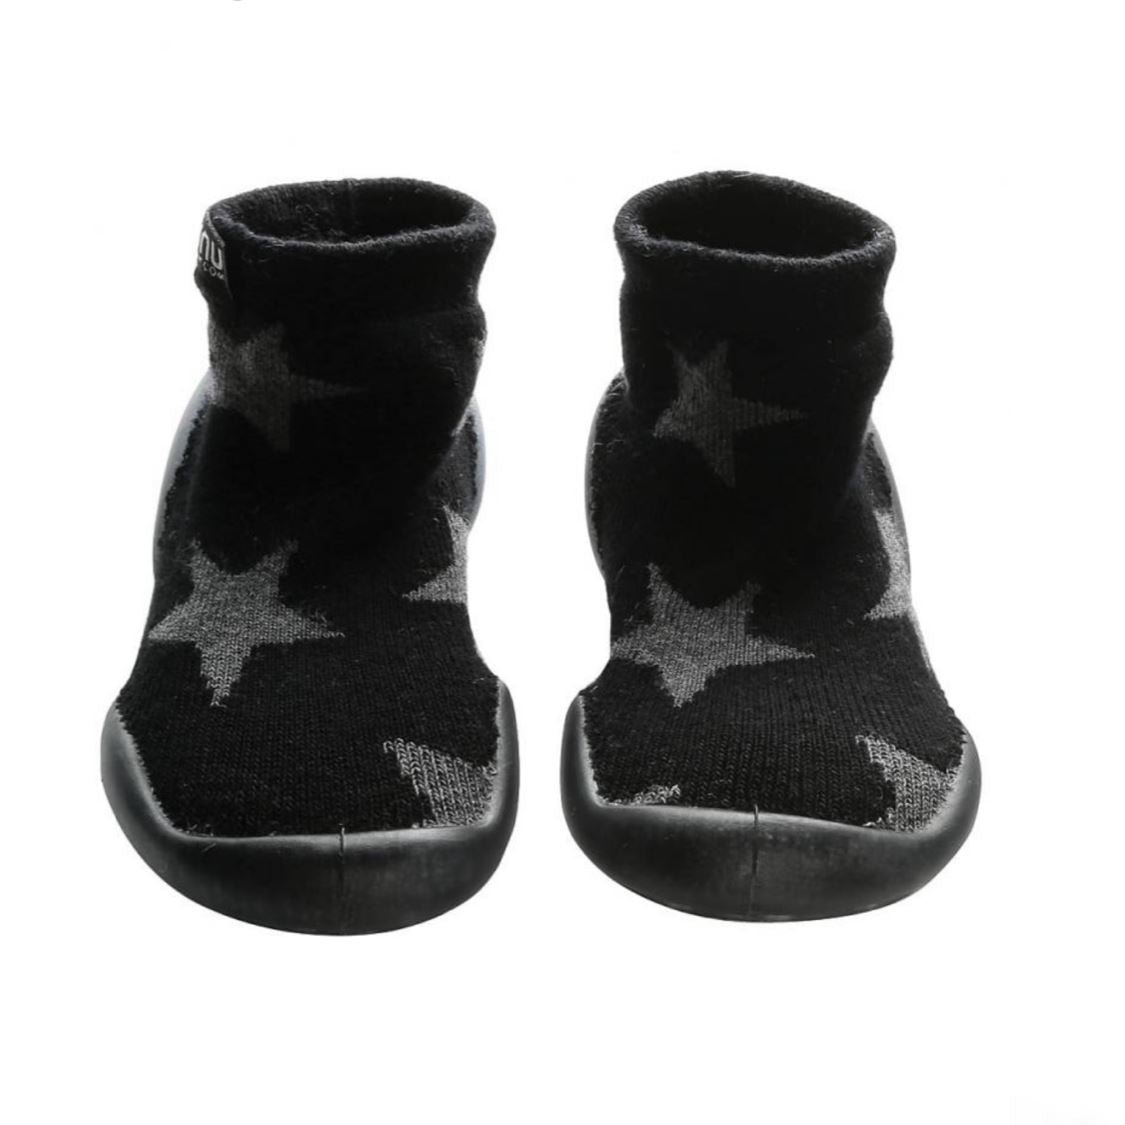 NC071-A Collegien + nununu slippers (6 Months - 3 years) footwear Nununu